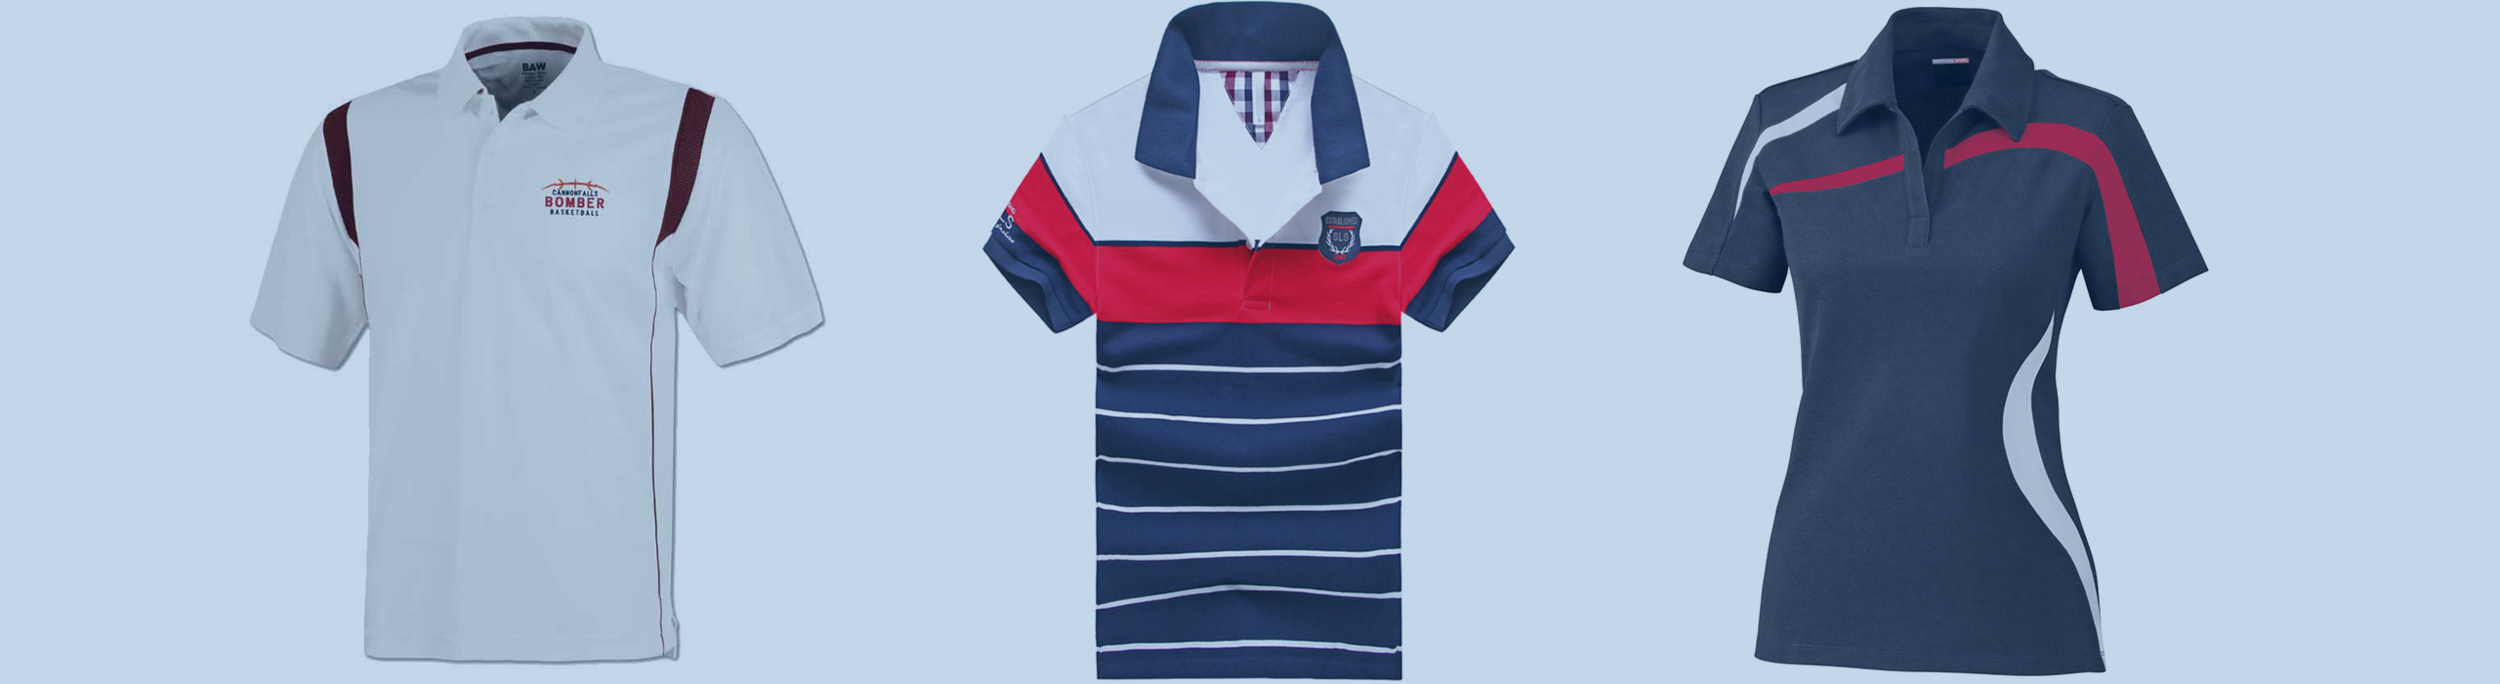 Custom Golf Polos And Shirts Wooter Apparel Team Uniforms And